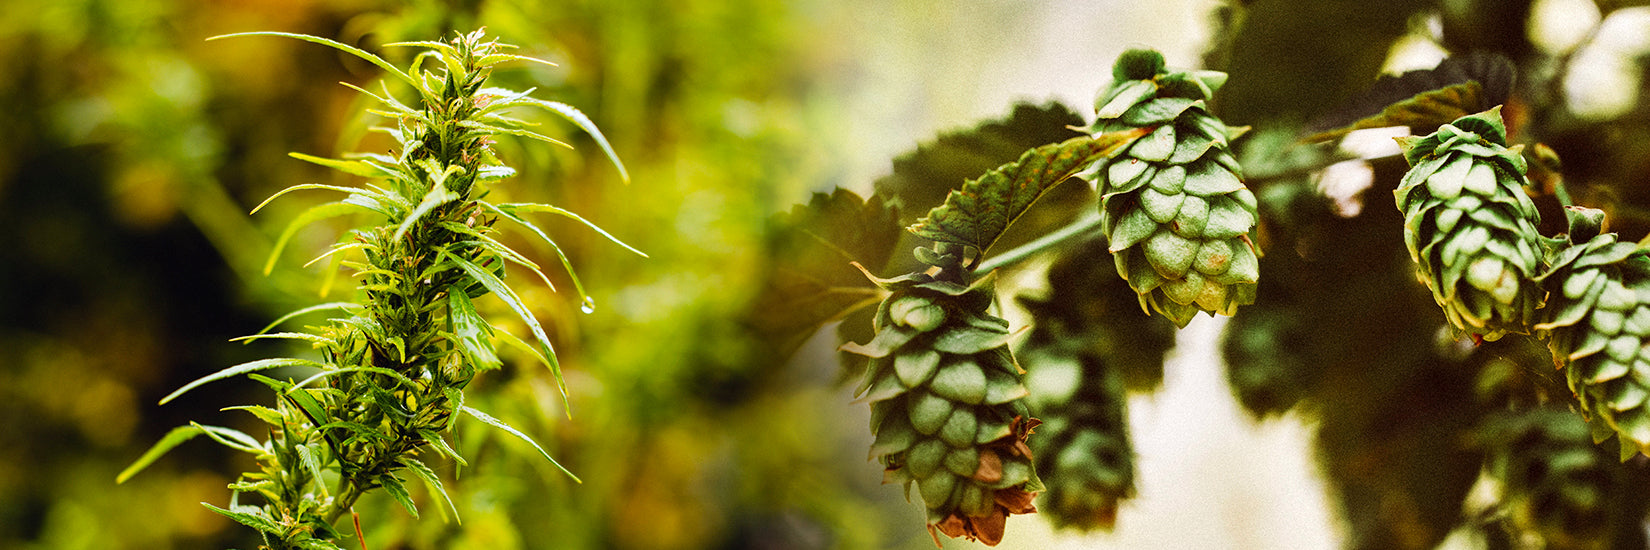 Hops & Cannabis: Can These Two Play Well Together?